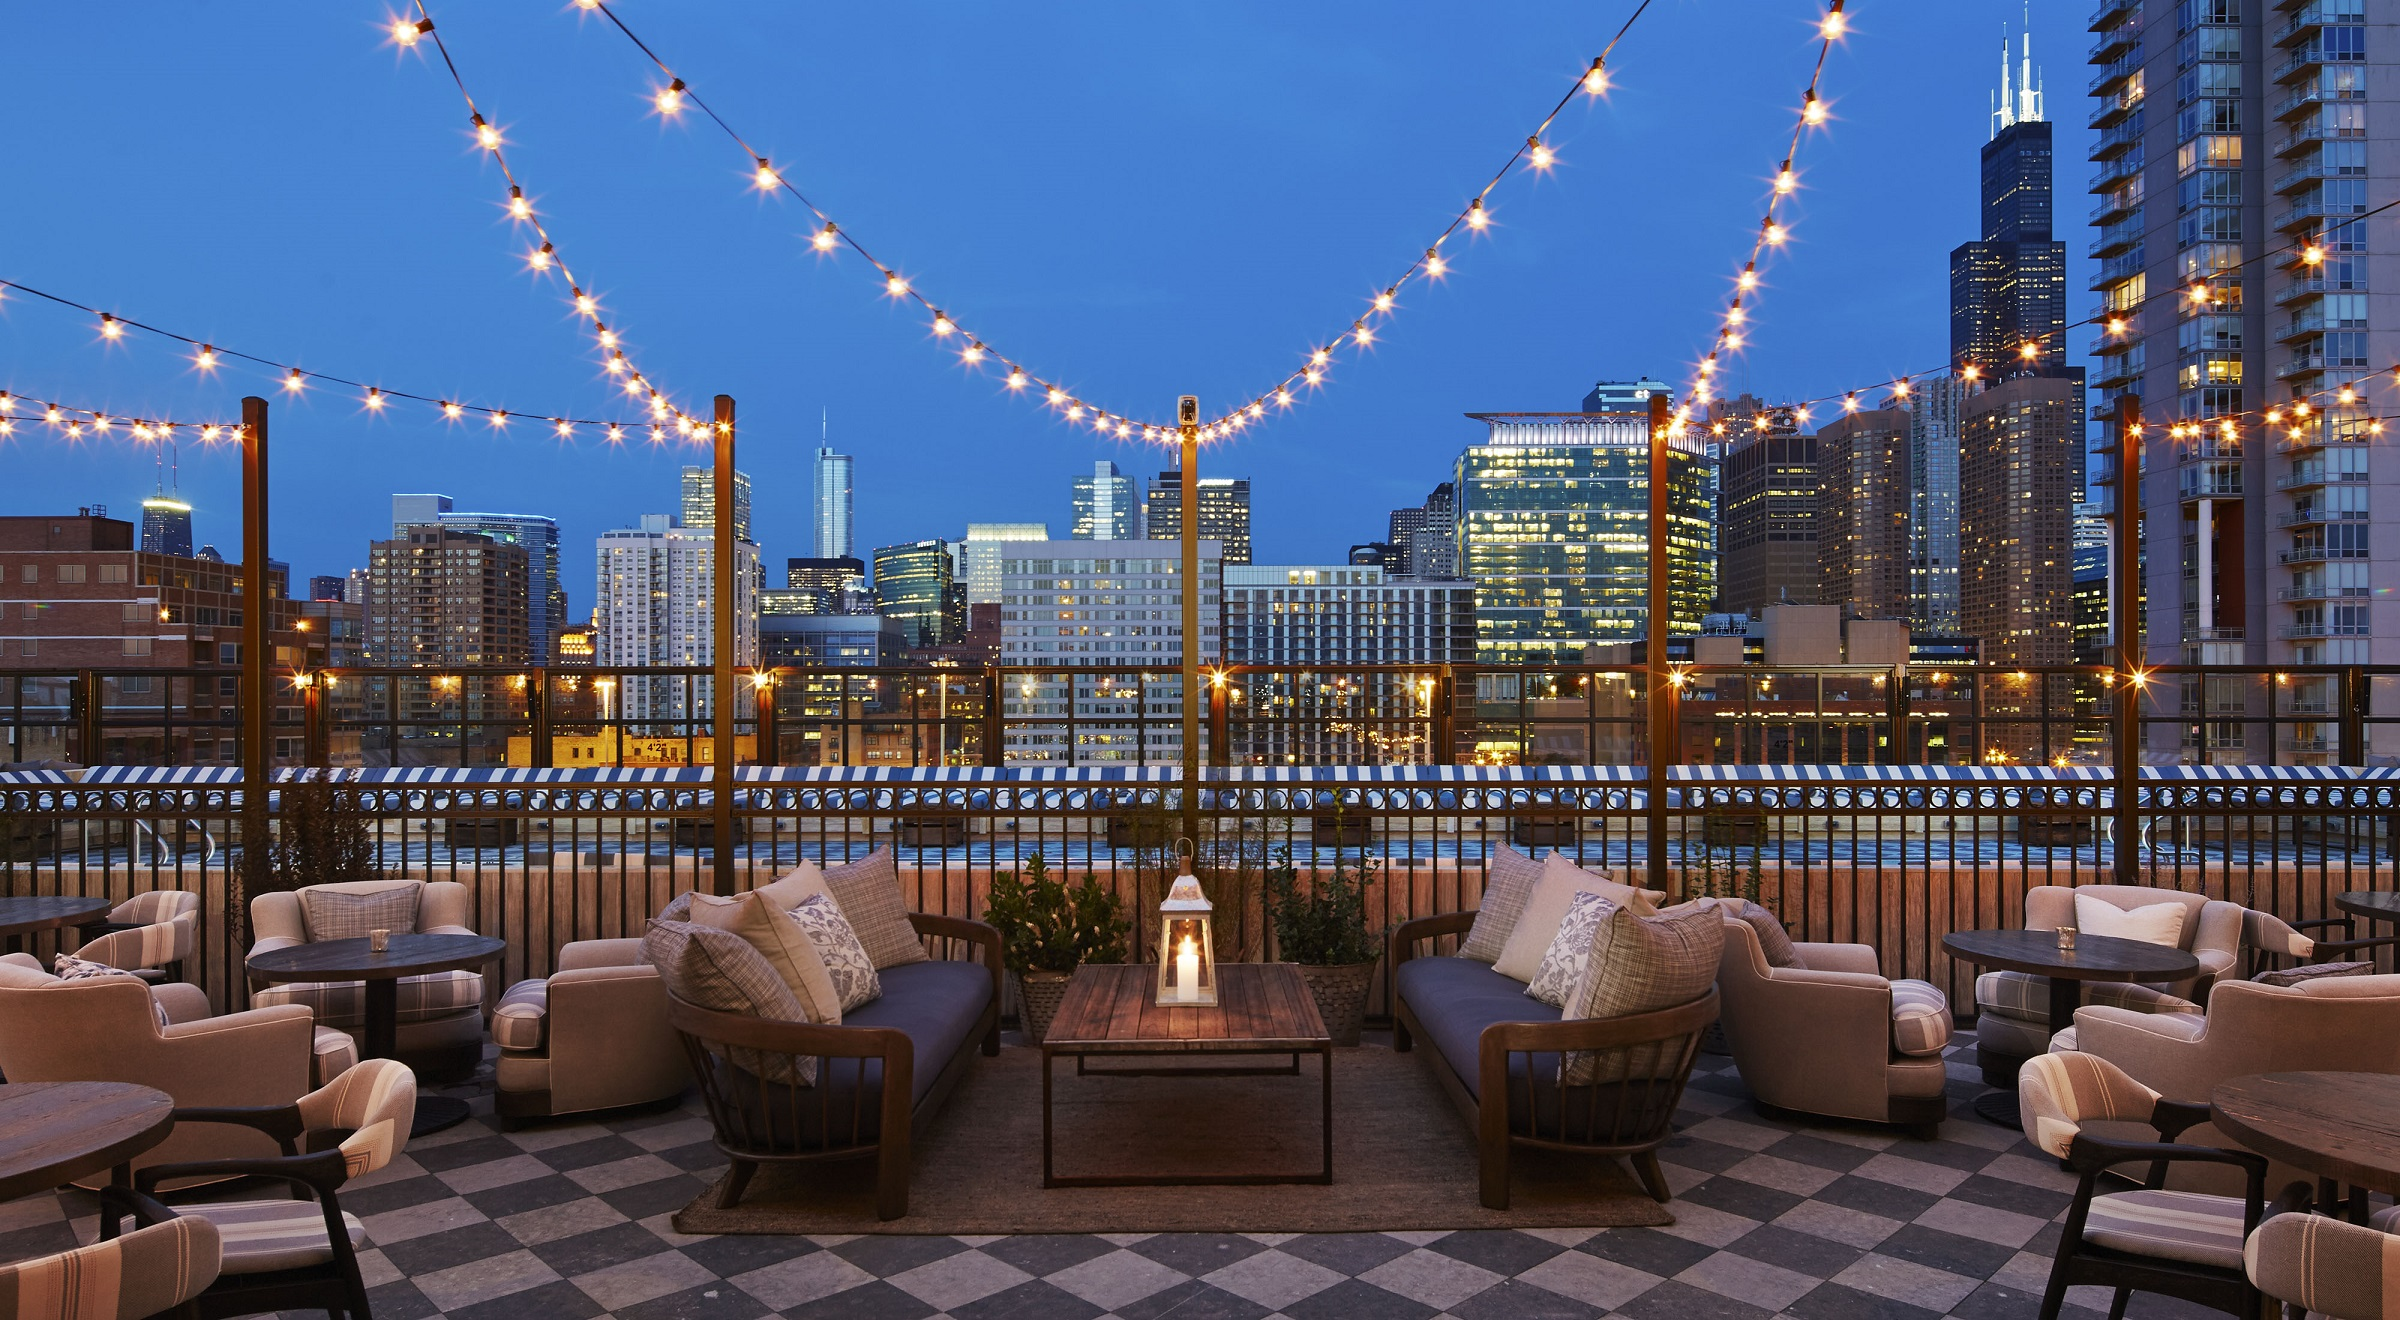 Soho House Chicago_Rooftop of Members House_photo credit is Dave Burk of Hedrich Blessing